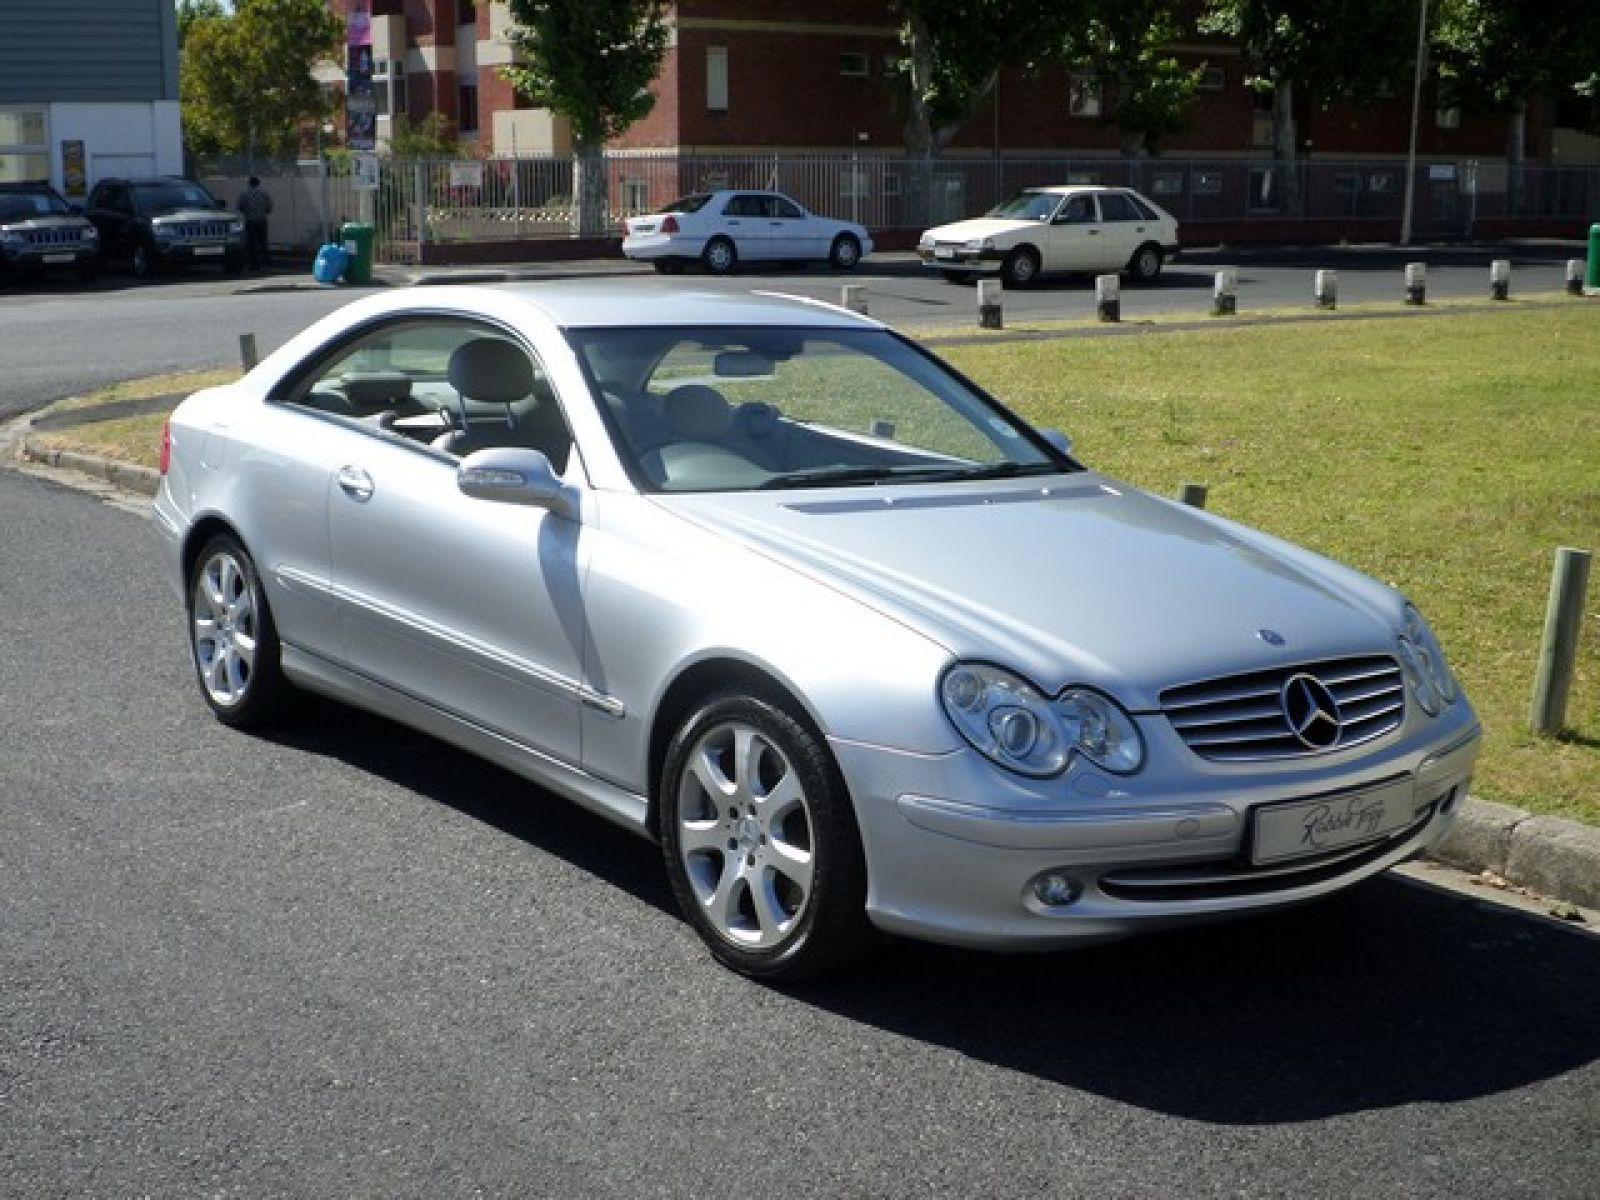 Clk clk500 coupe specifications for 2003 mercedes benz clk500 for sale